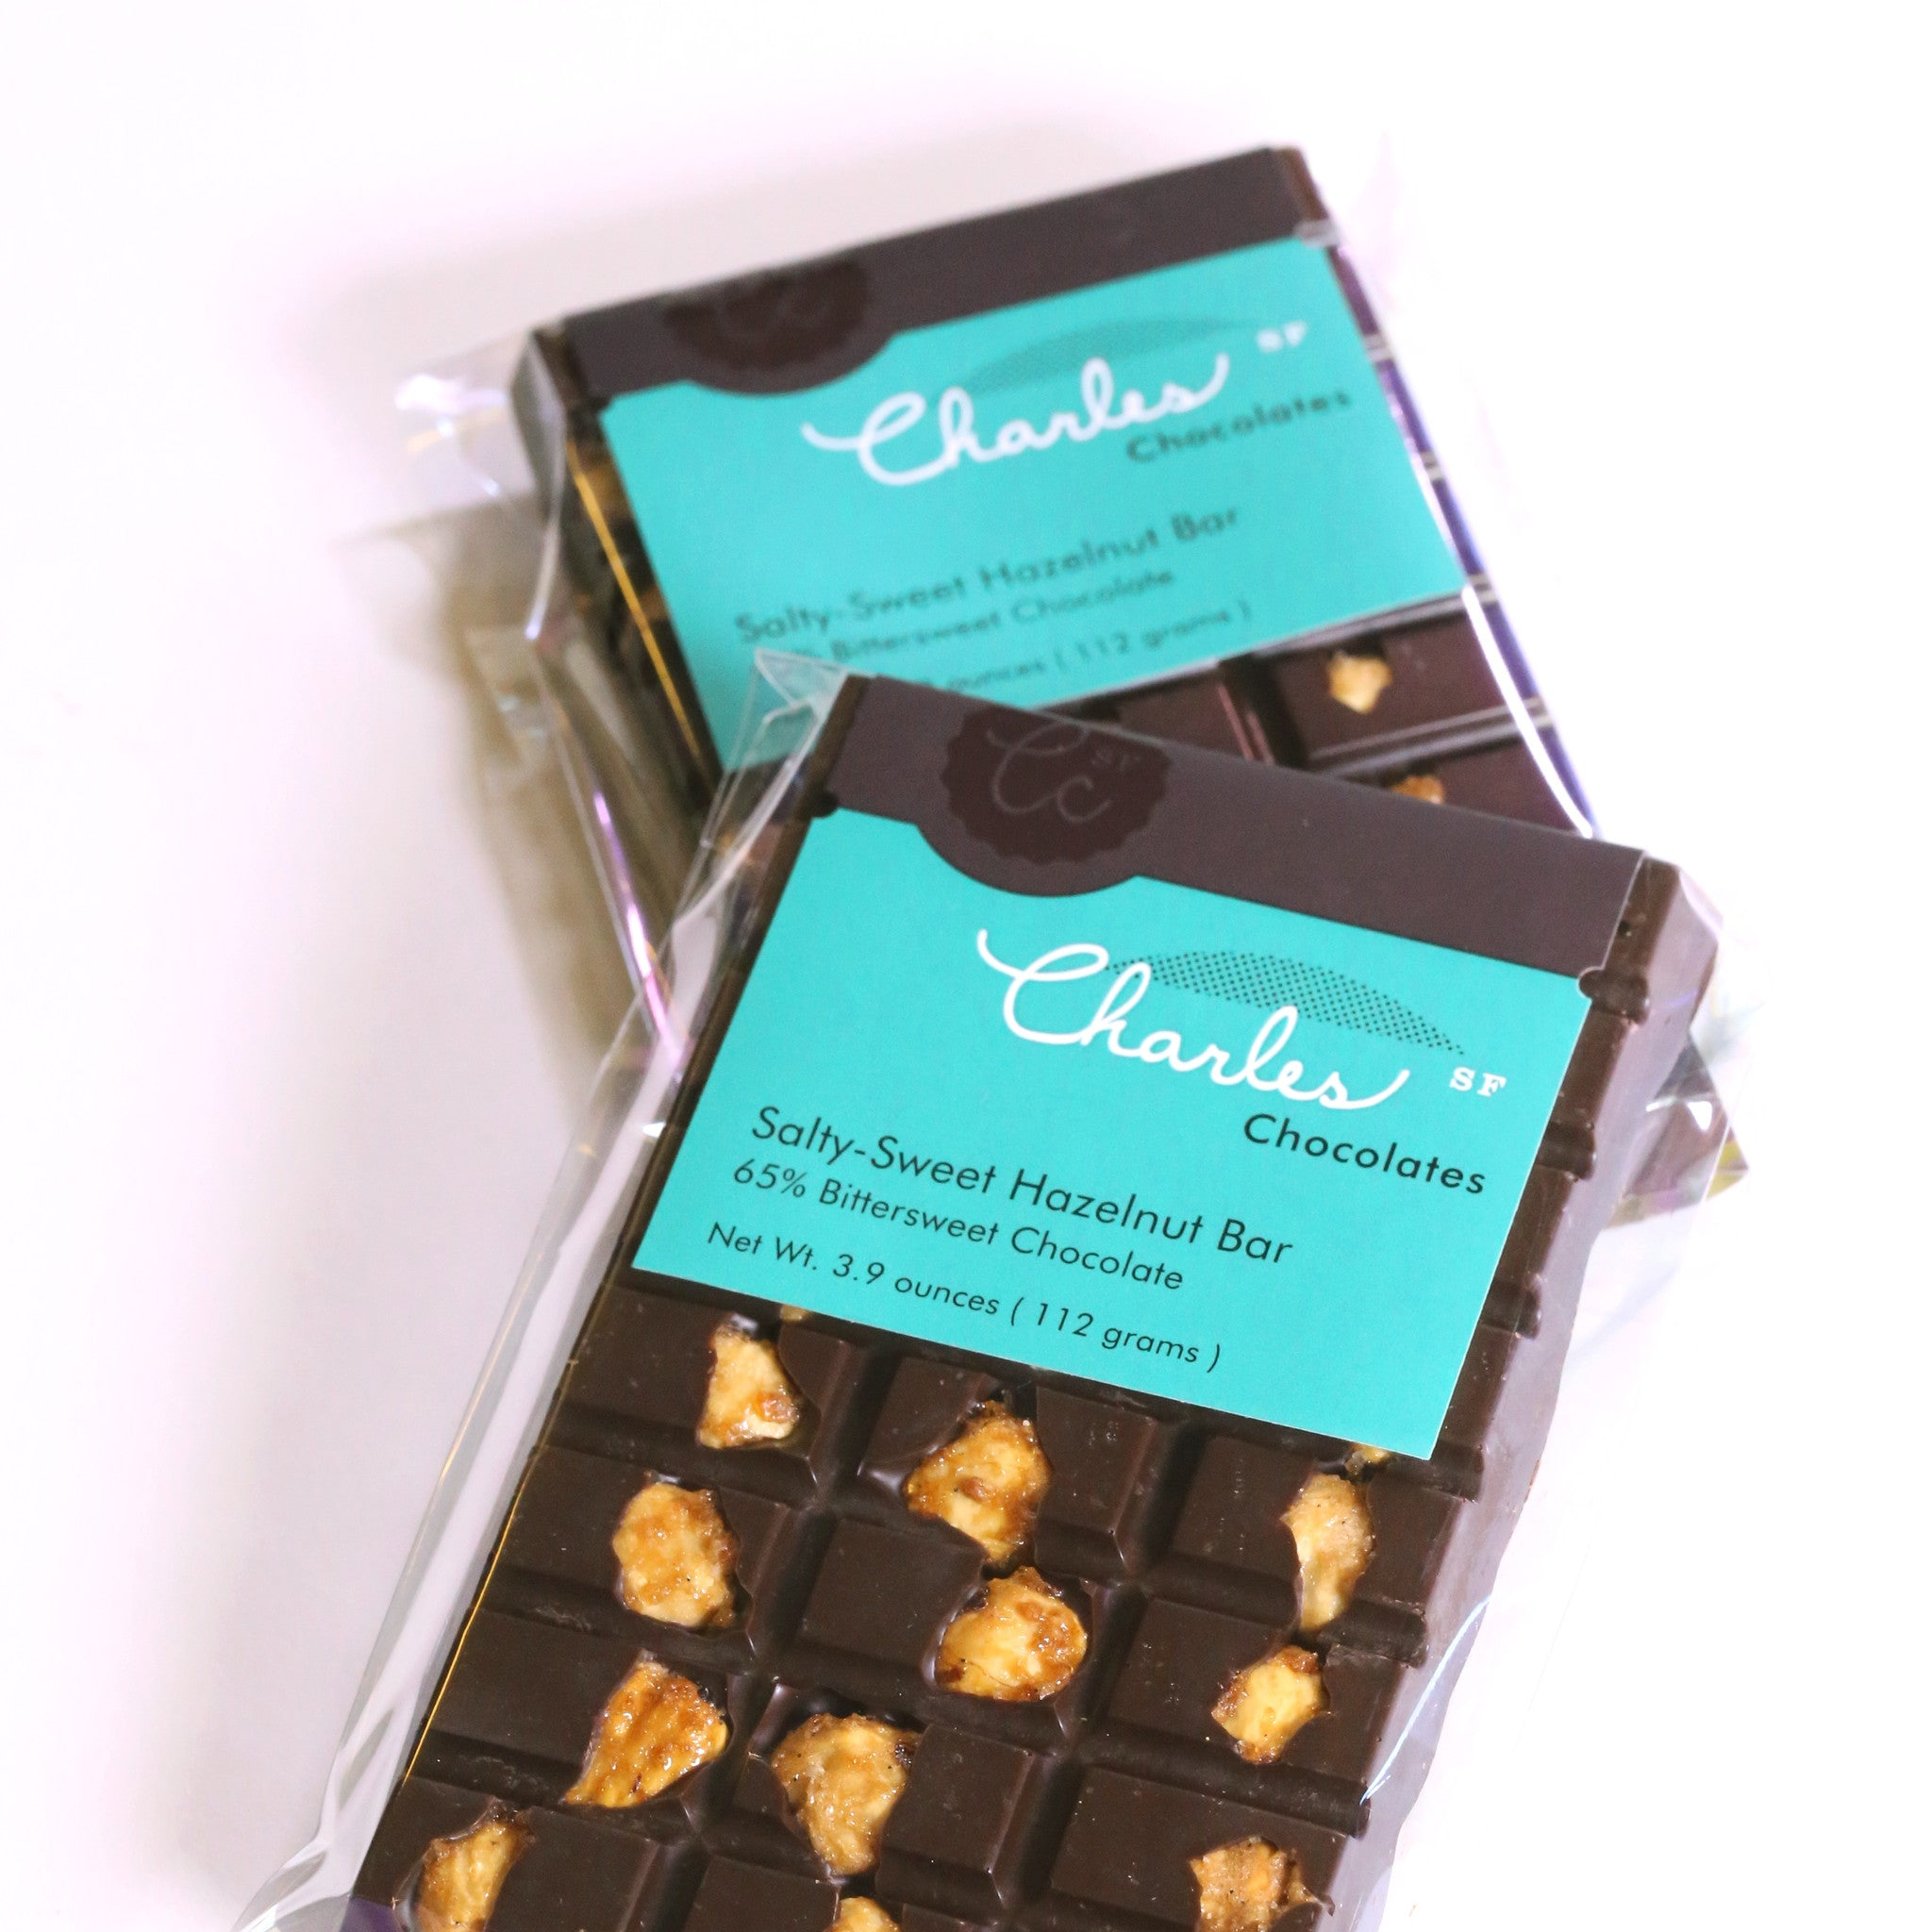 Gifts | Charles Chocolates